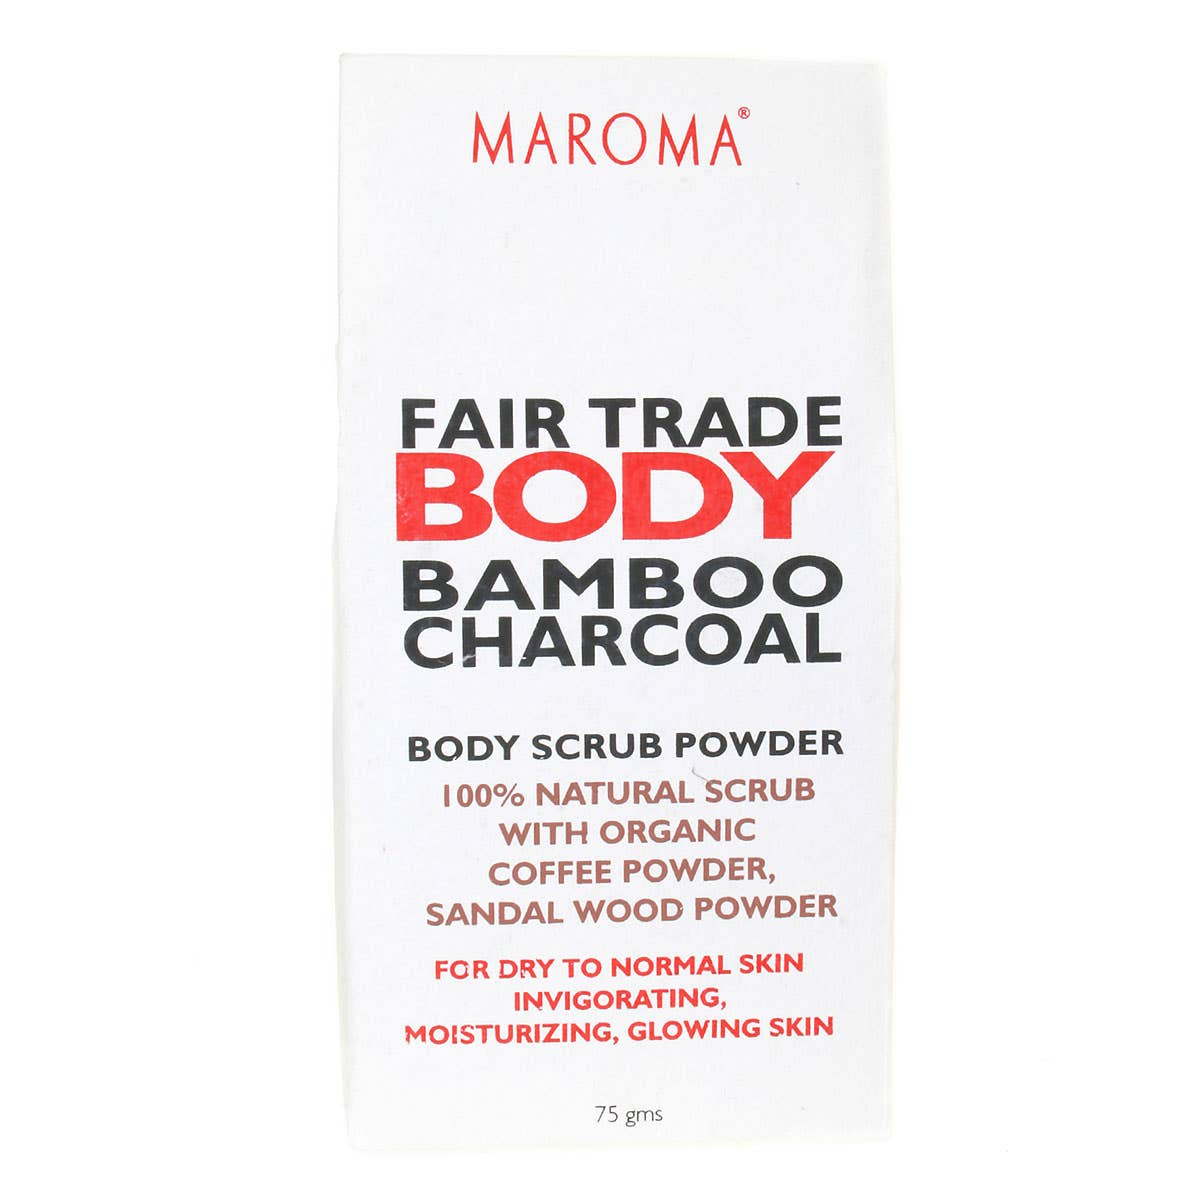 Maroma Body Scrub Powder with Organic Coffee Powder 100g